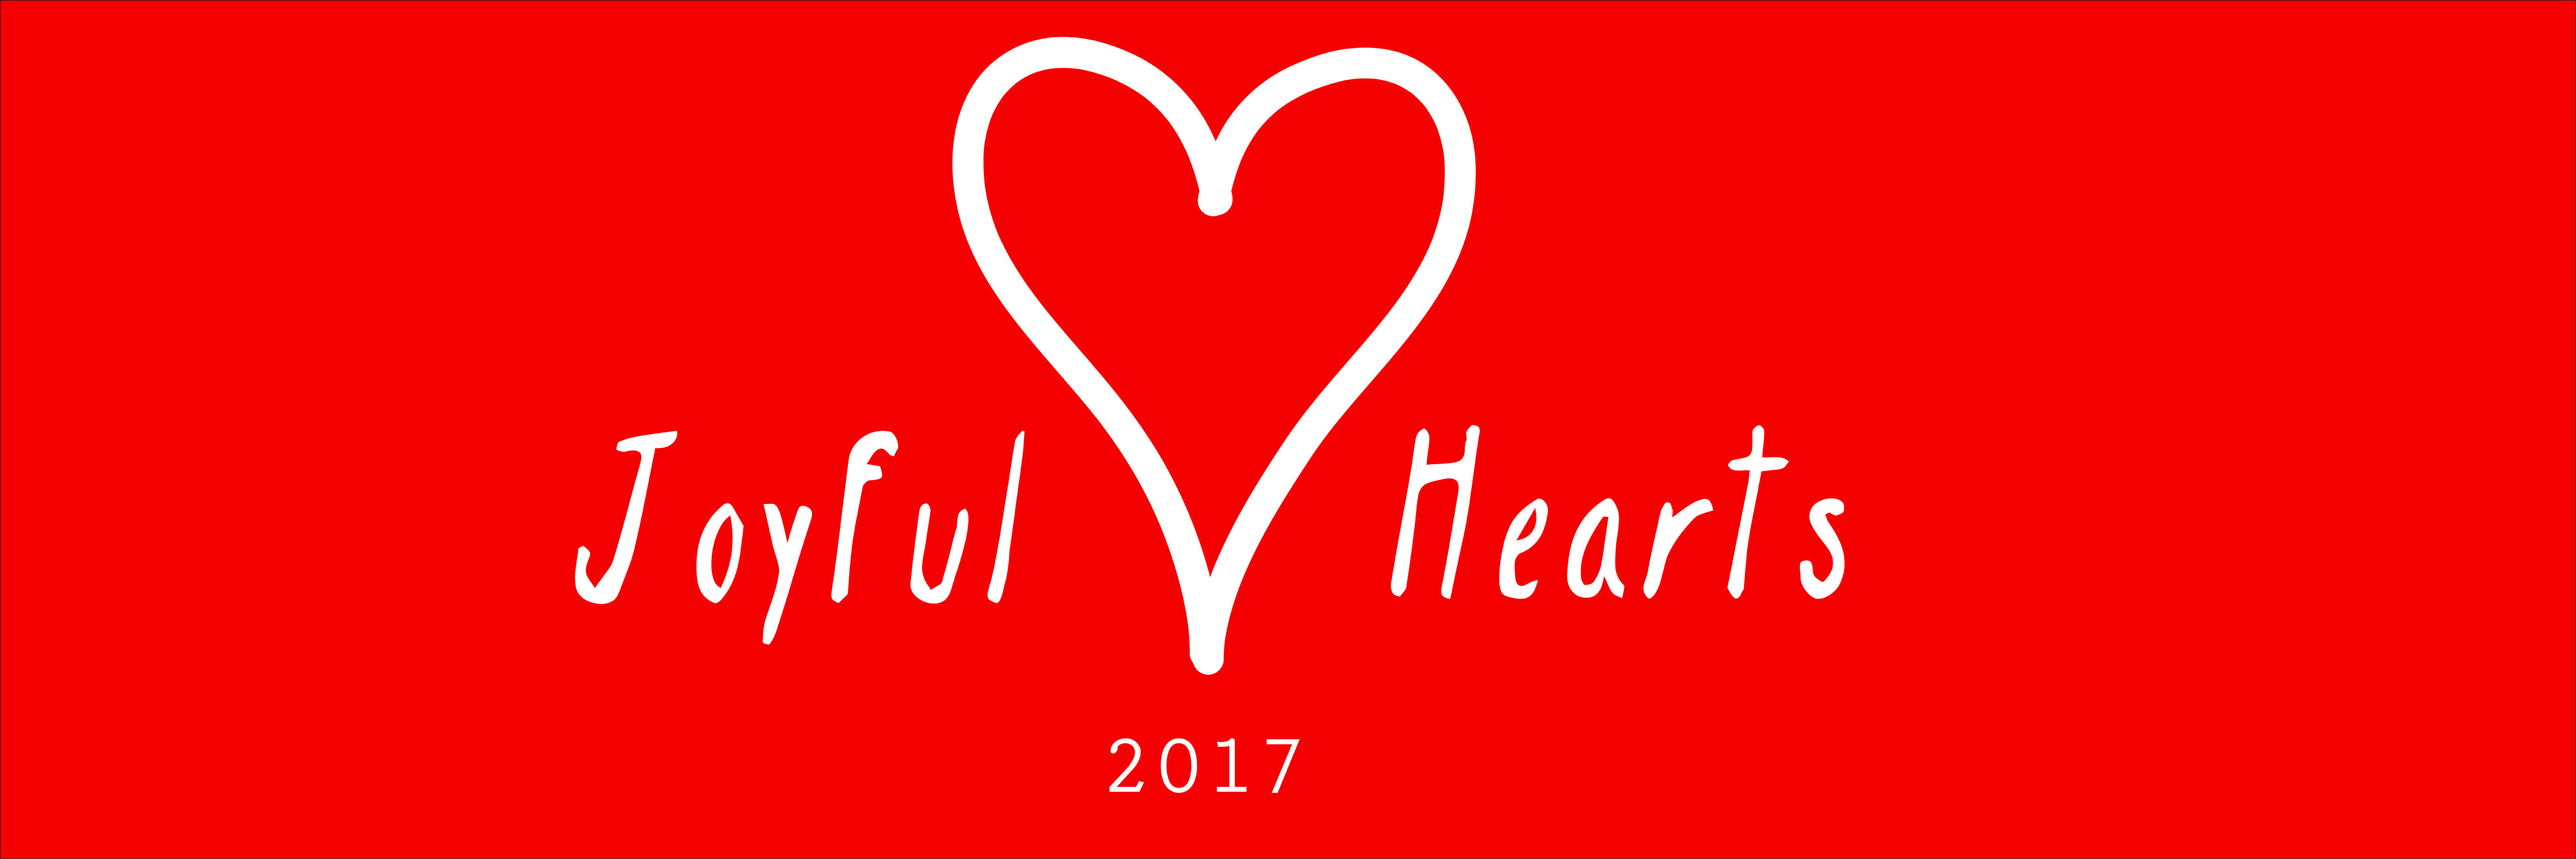 The joyful hearts program is designed for iniduals who have